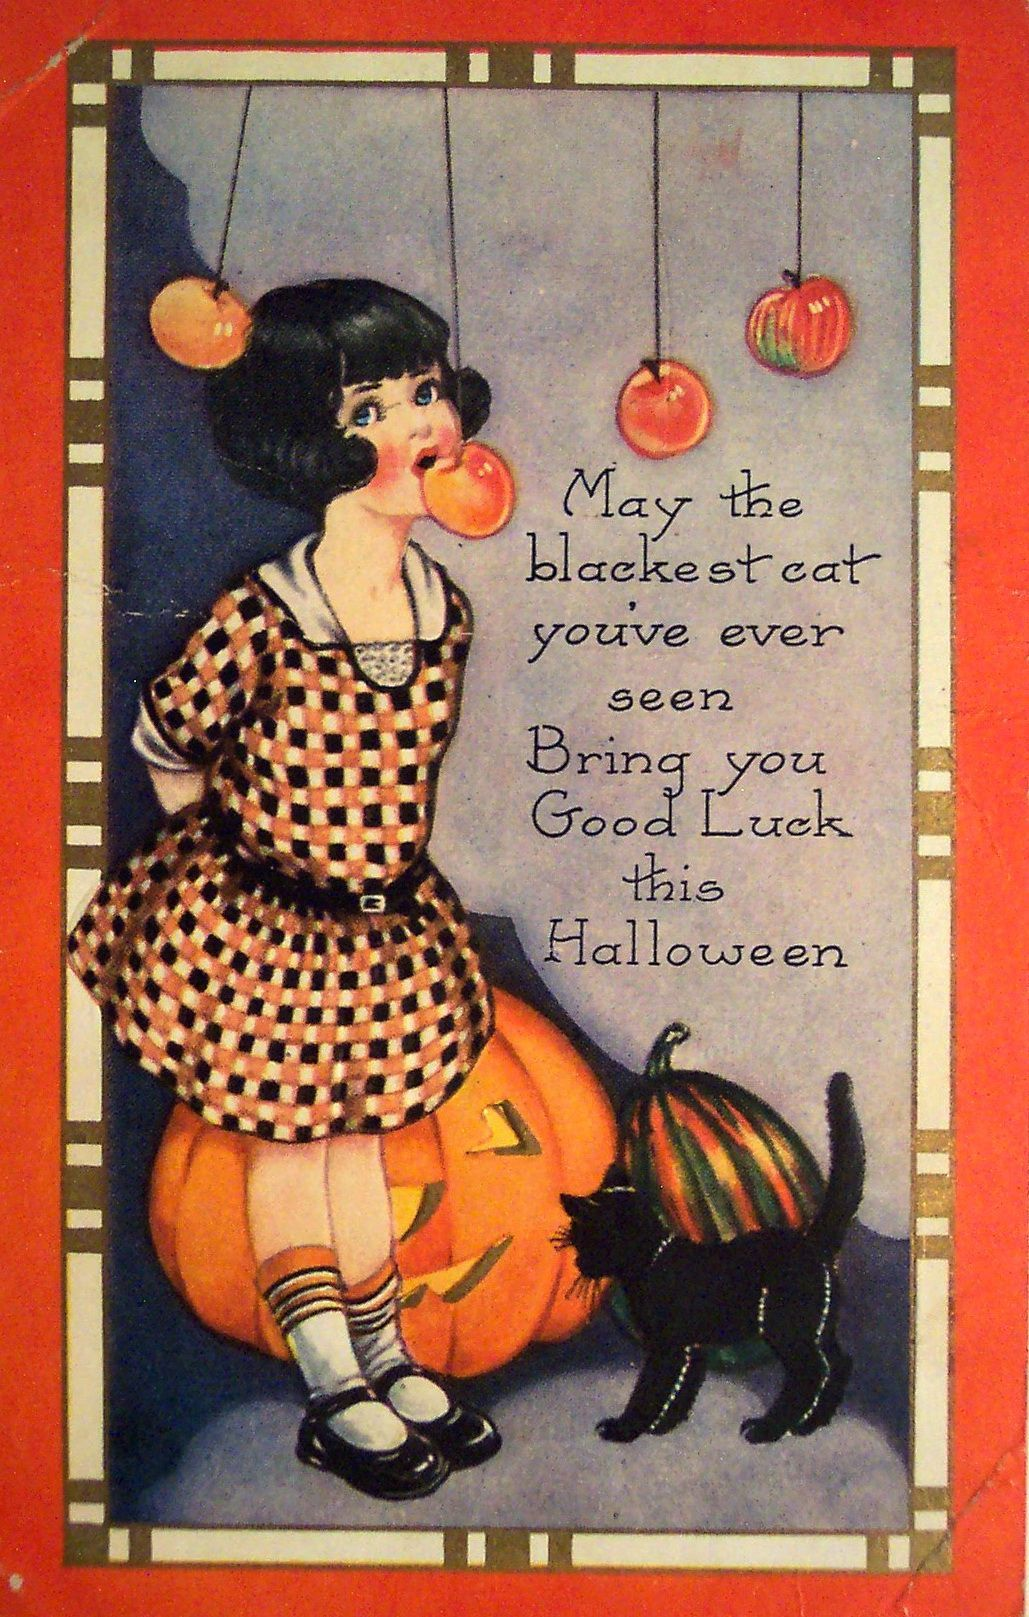 Vintage Halloween Cards | Vintage Holiday Images & Cards: Vintage ...